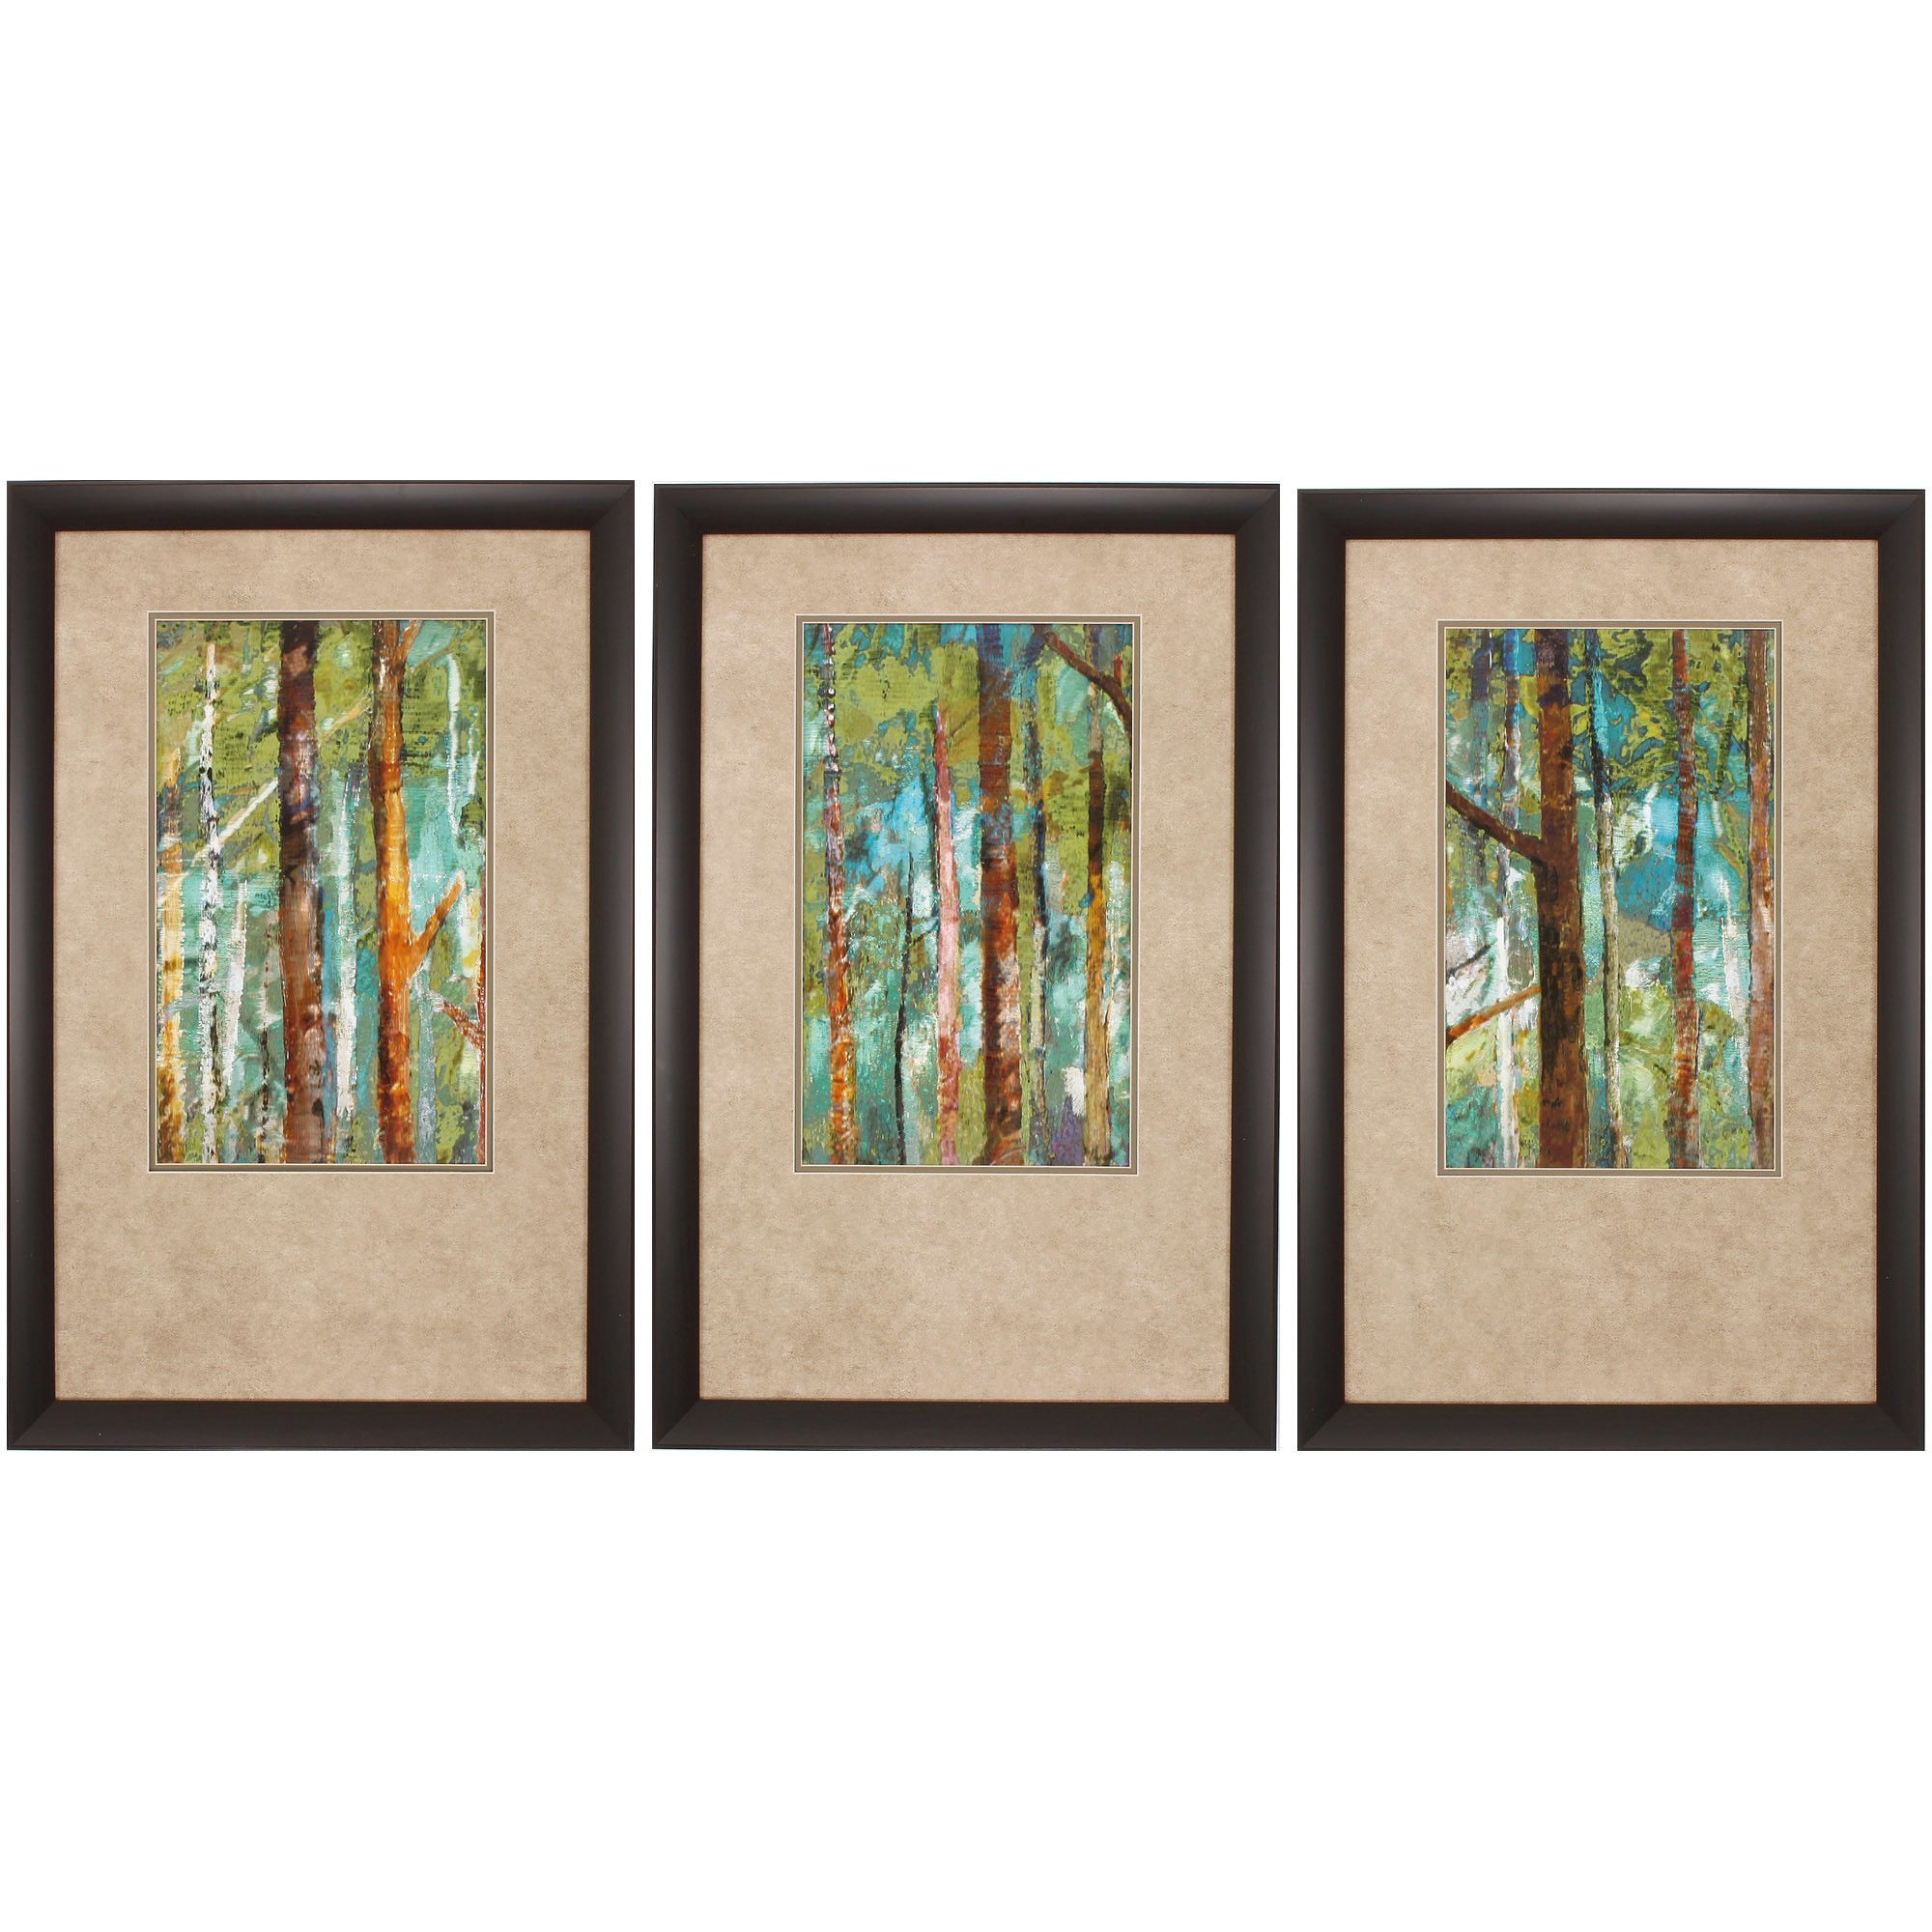 Propac Images Woodland I Ii Iii 3 Piece Framed Painting